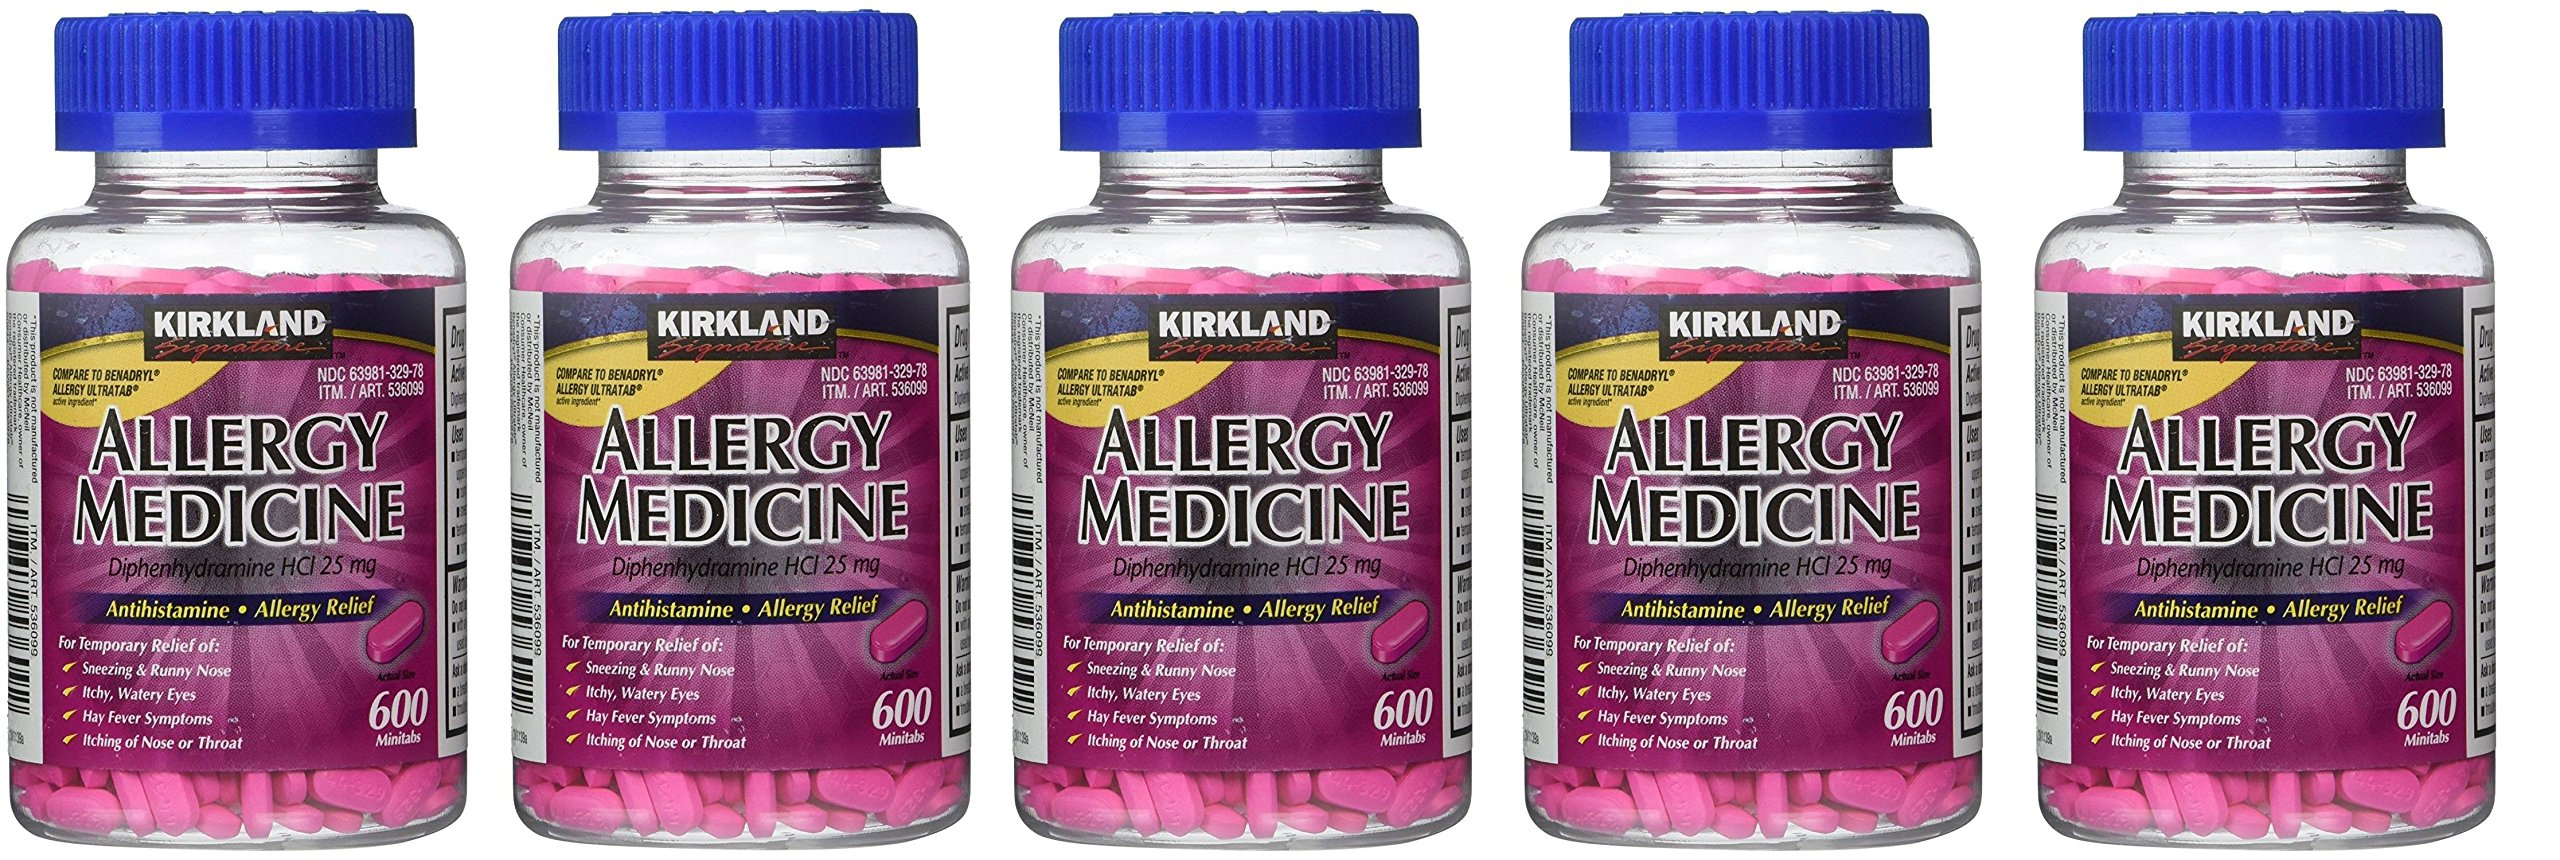 Diphenhydramine HCI 25 Mg - Kirkland Brand - Allergy Medicine and AntihistamineCompare to Active Ingredient of Benadryl Allergy Generic, 600 Count (5 Pack) by Kirkland Signature